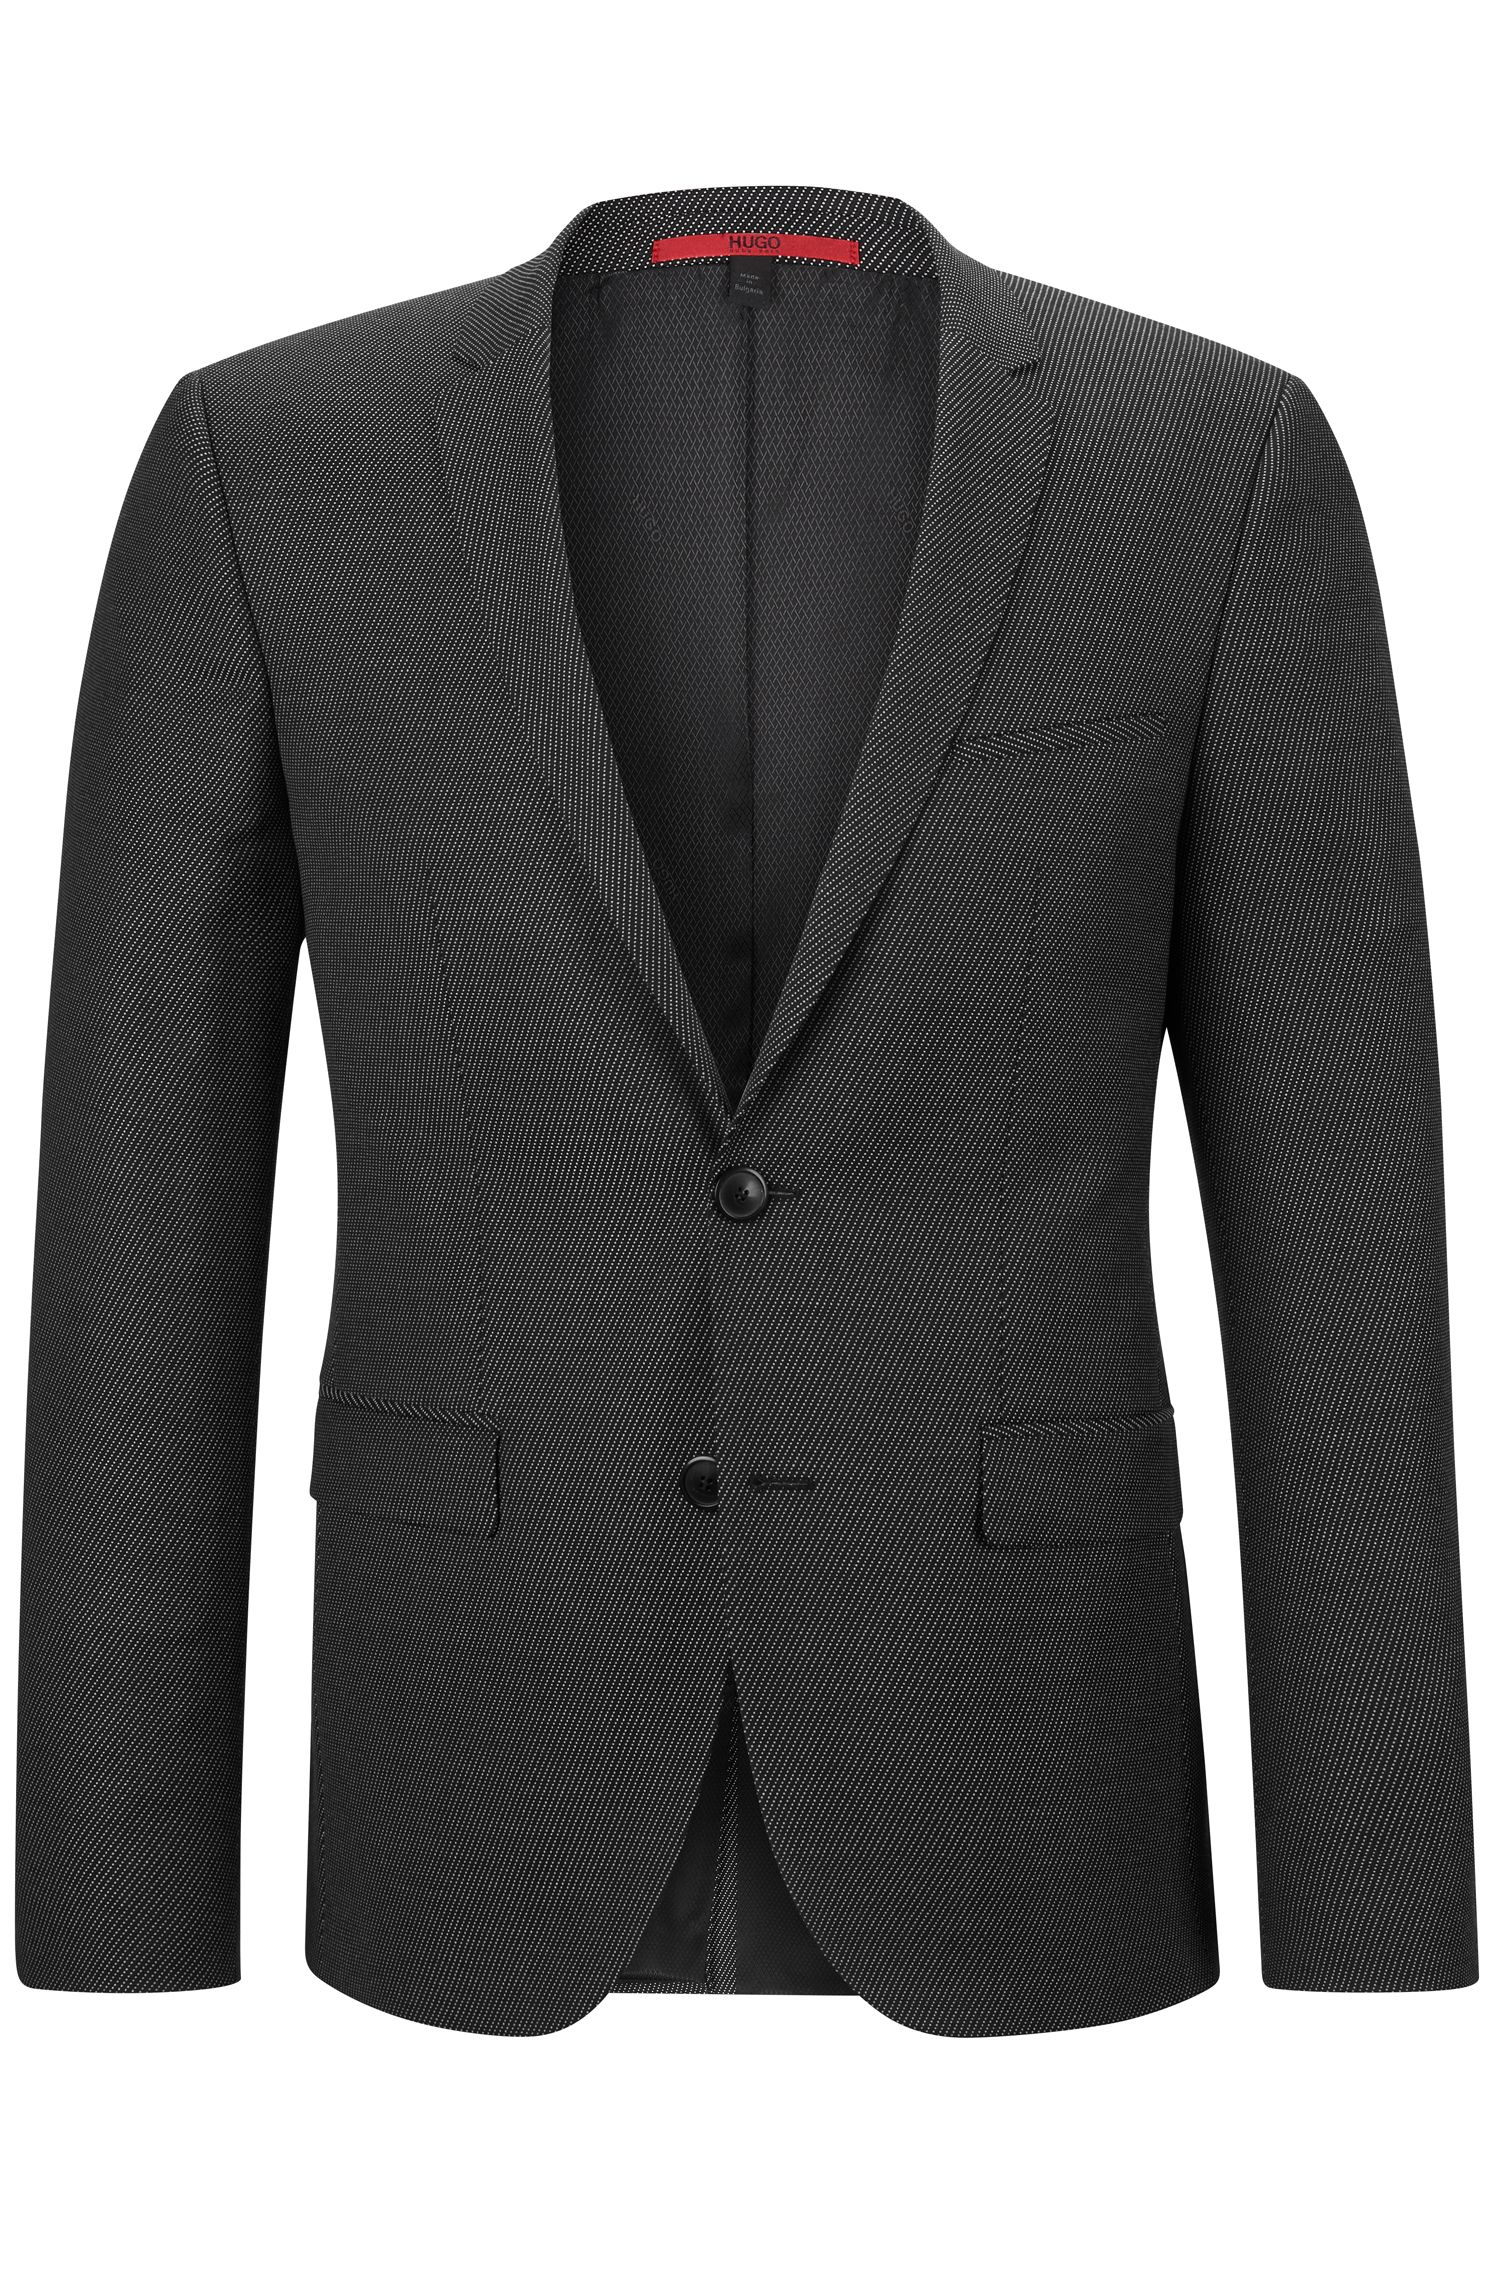 Virgin Wool Blend Sport Coat, Extra Slim Fit | Adris